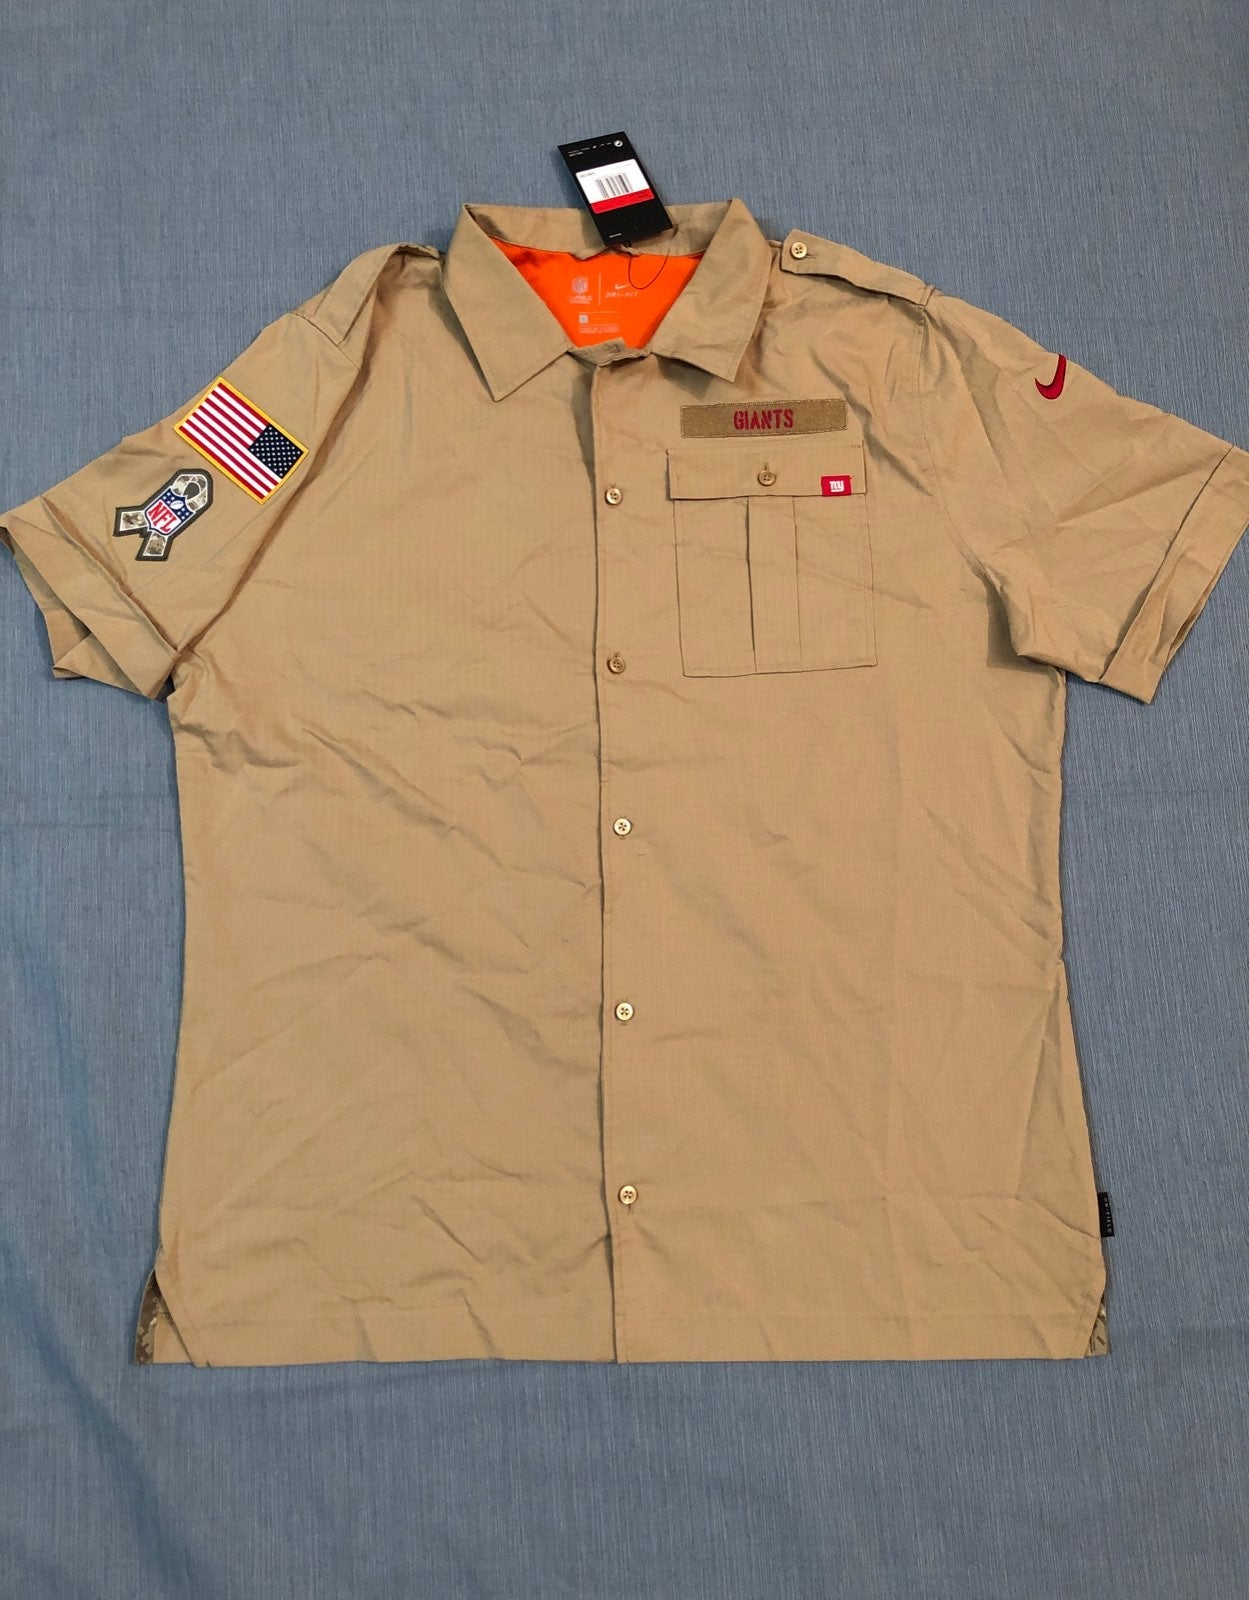 Men's size LARGE Nike Salute to Service